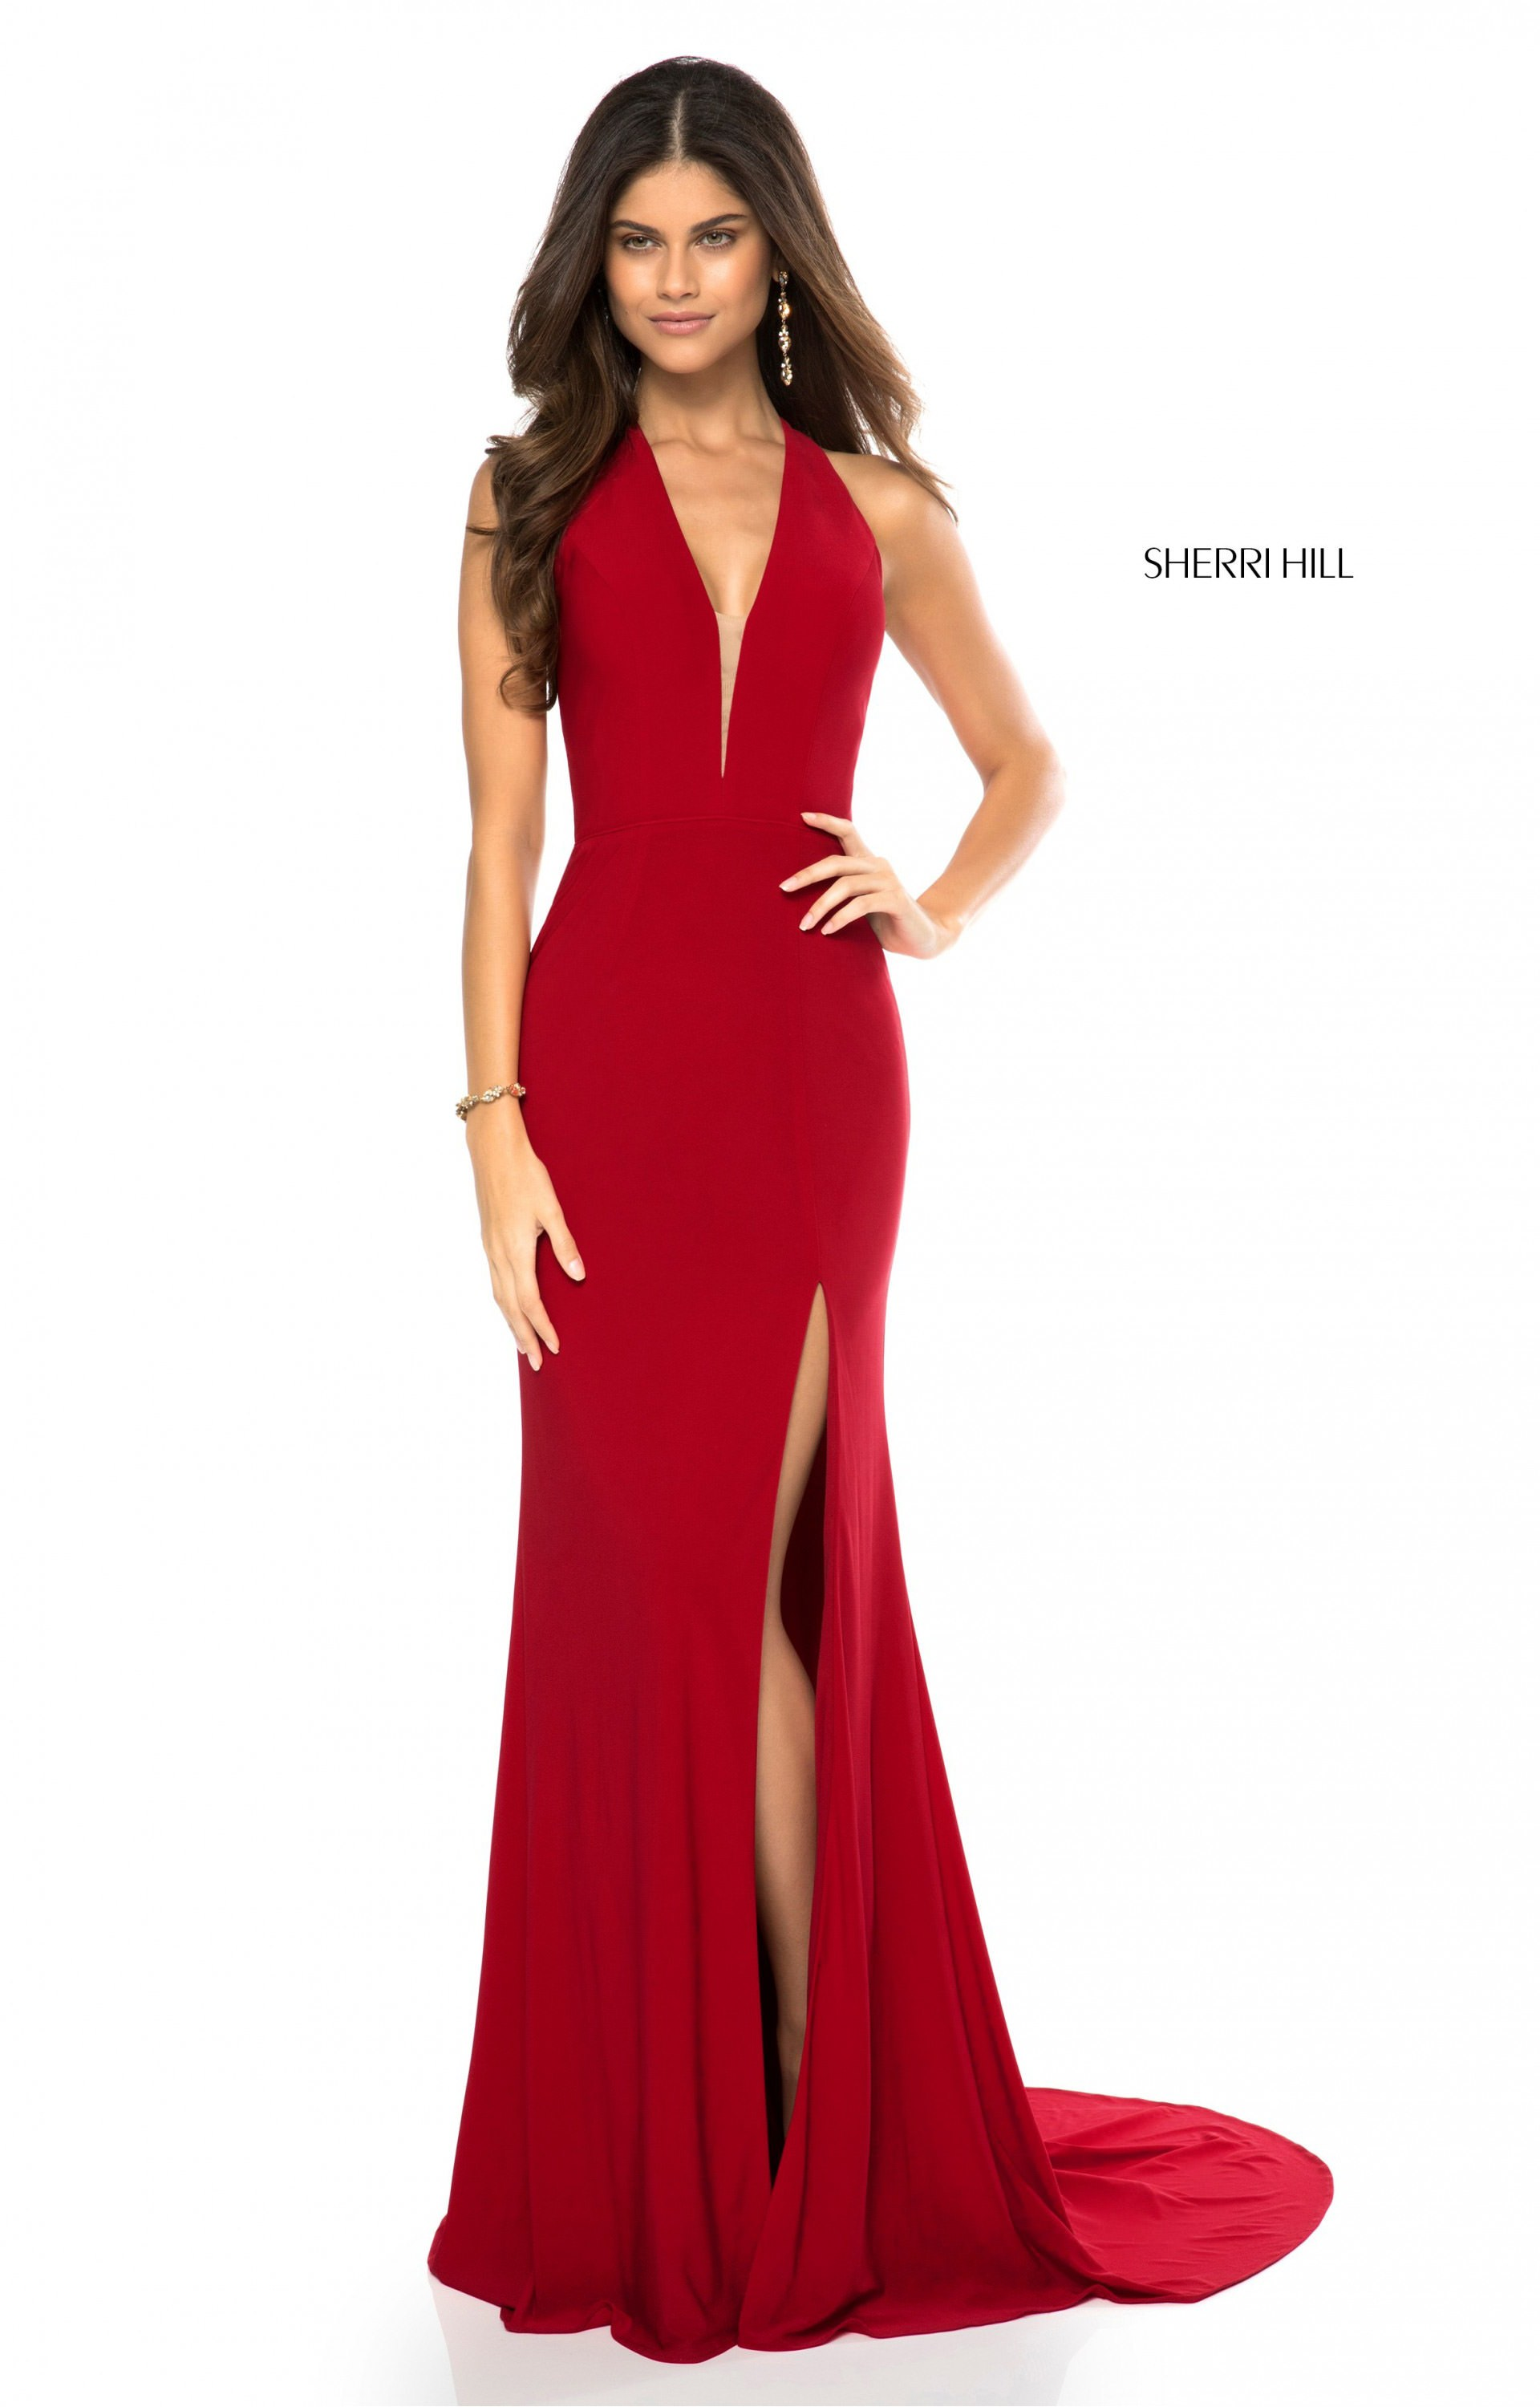 Sherri Hill 51806 Long Fitted Jersey V Neck Prom Dress